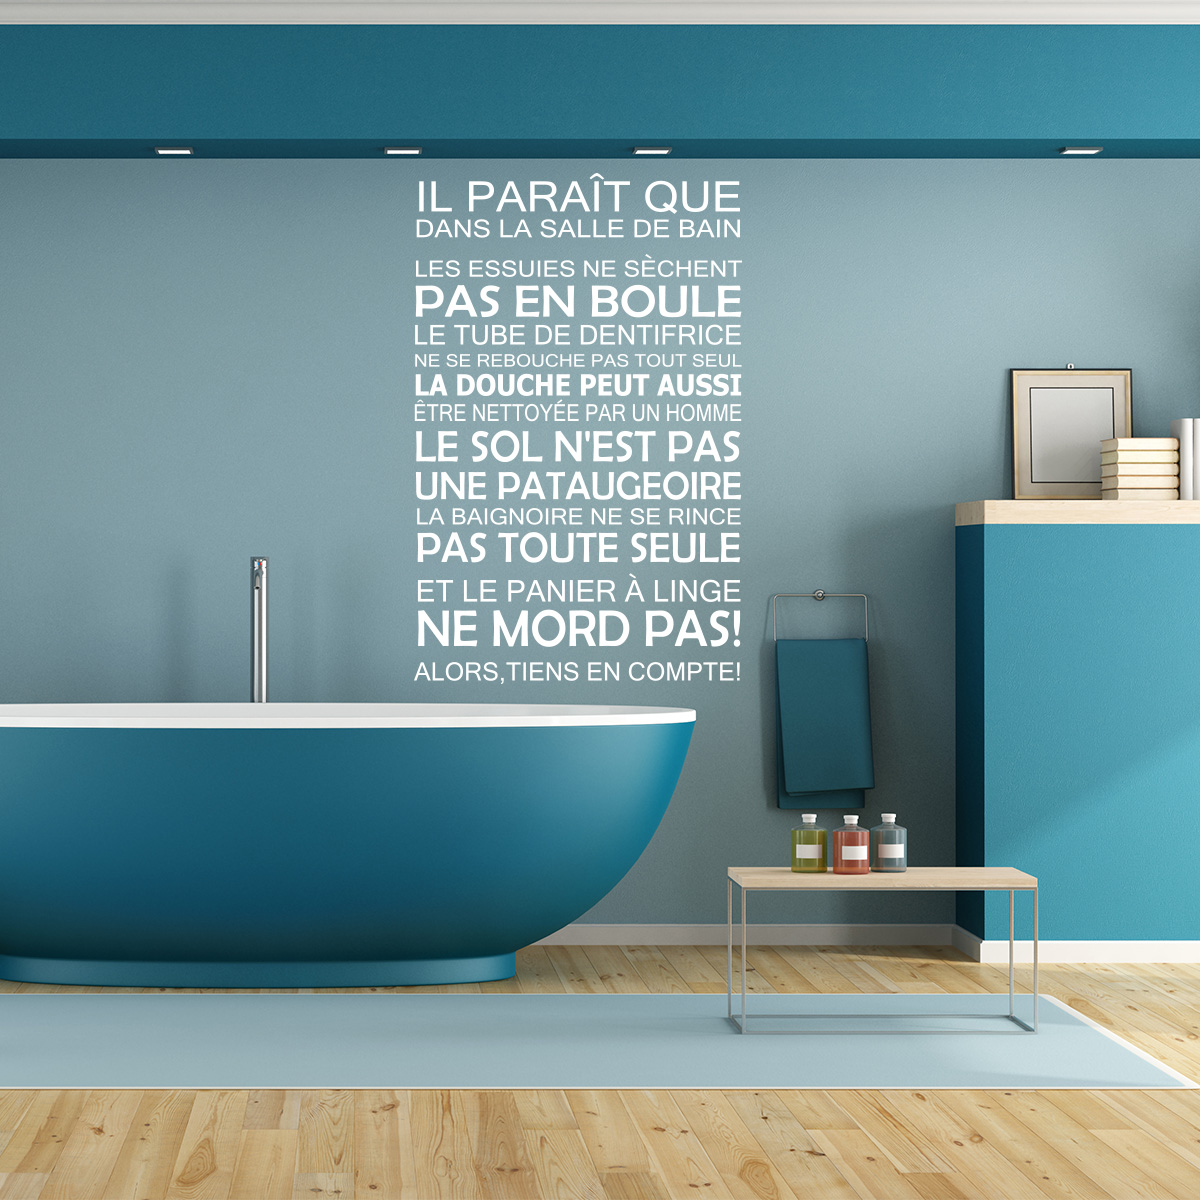 sticker il para t que dans la salle de bain stickers citations fran ais ambiance sticker. Black Bedroom Furniture Sets. Home Design Ideas